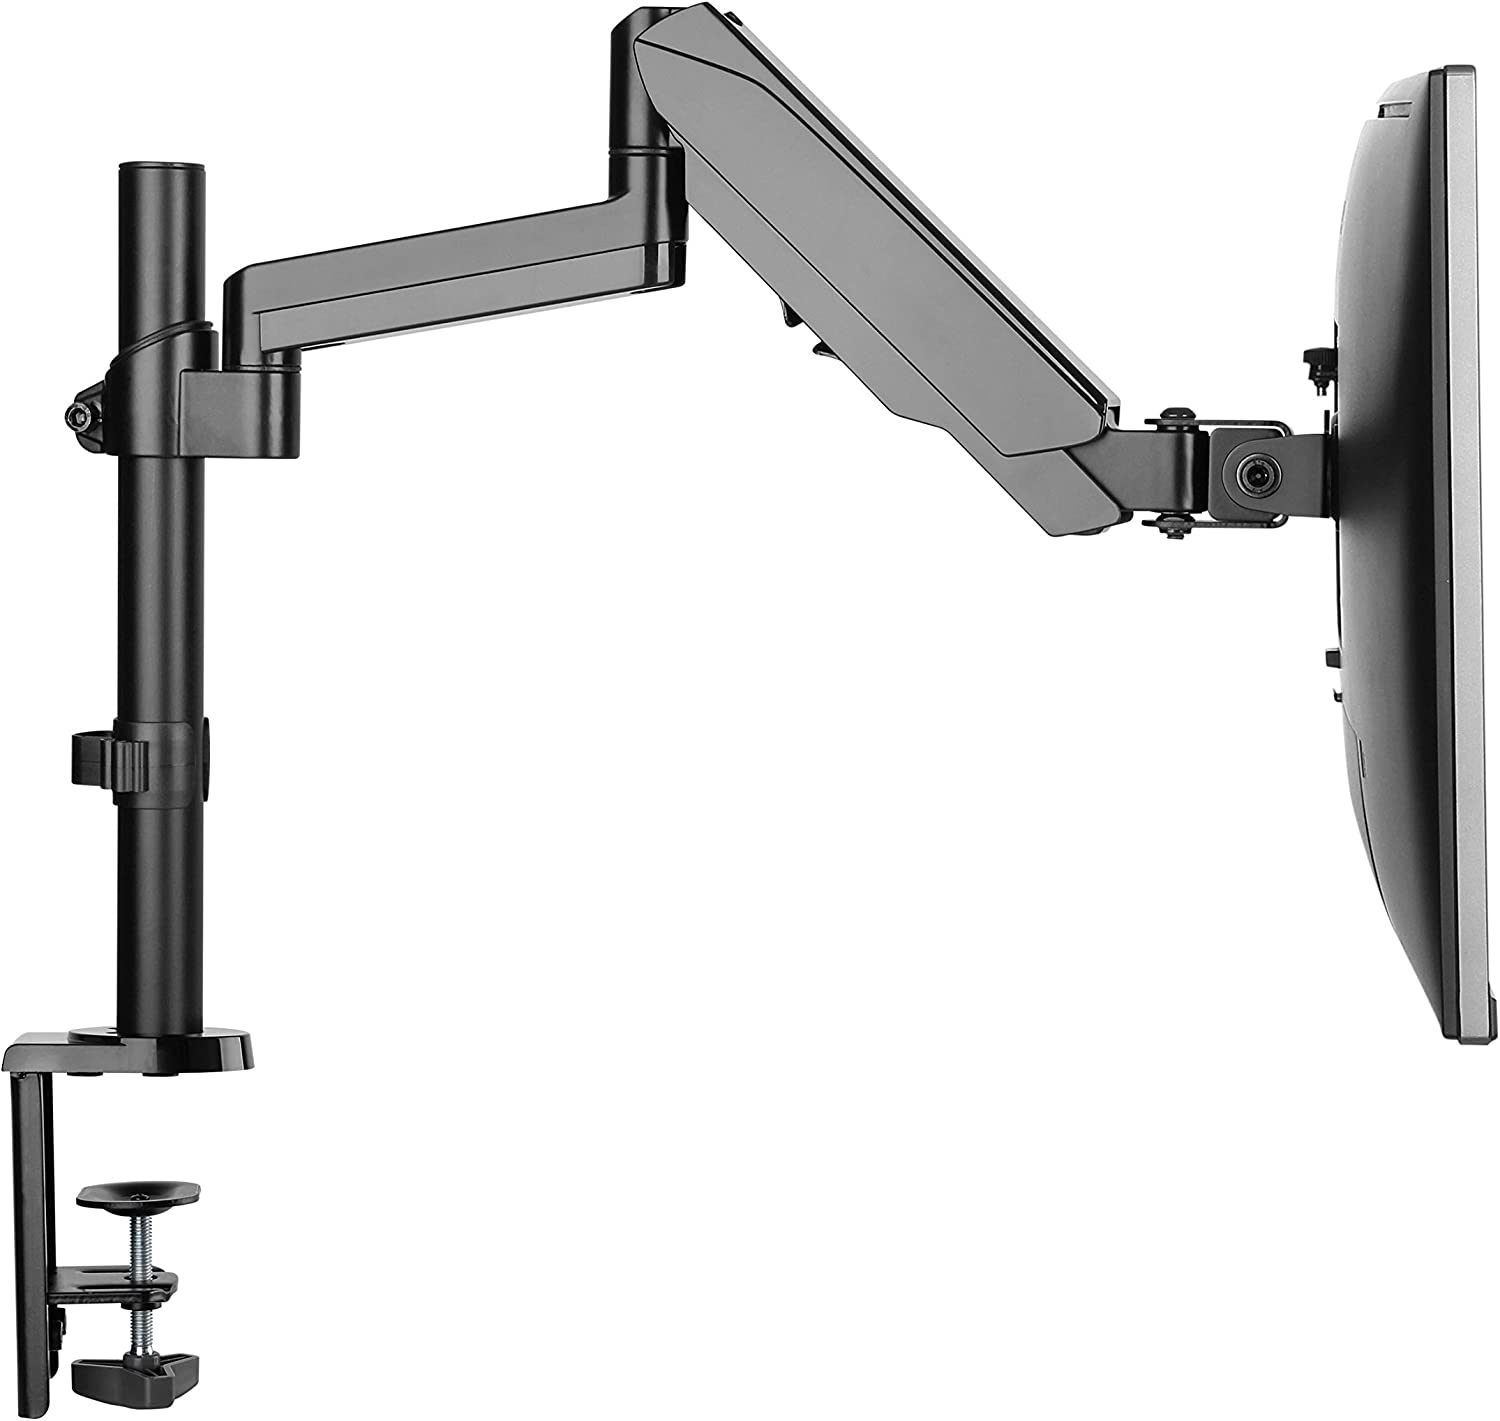 TechOrbits Monitor Mount - Computer Screen Stand - Single Monitor Vesa Mount - Gas Spring Clamp On Arm